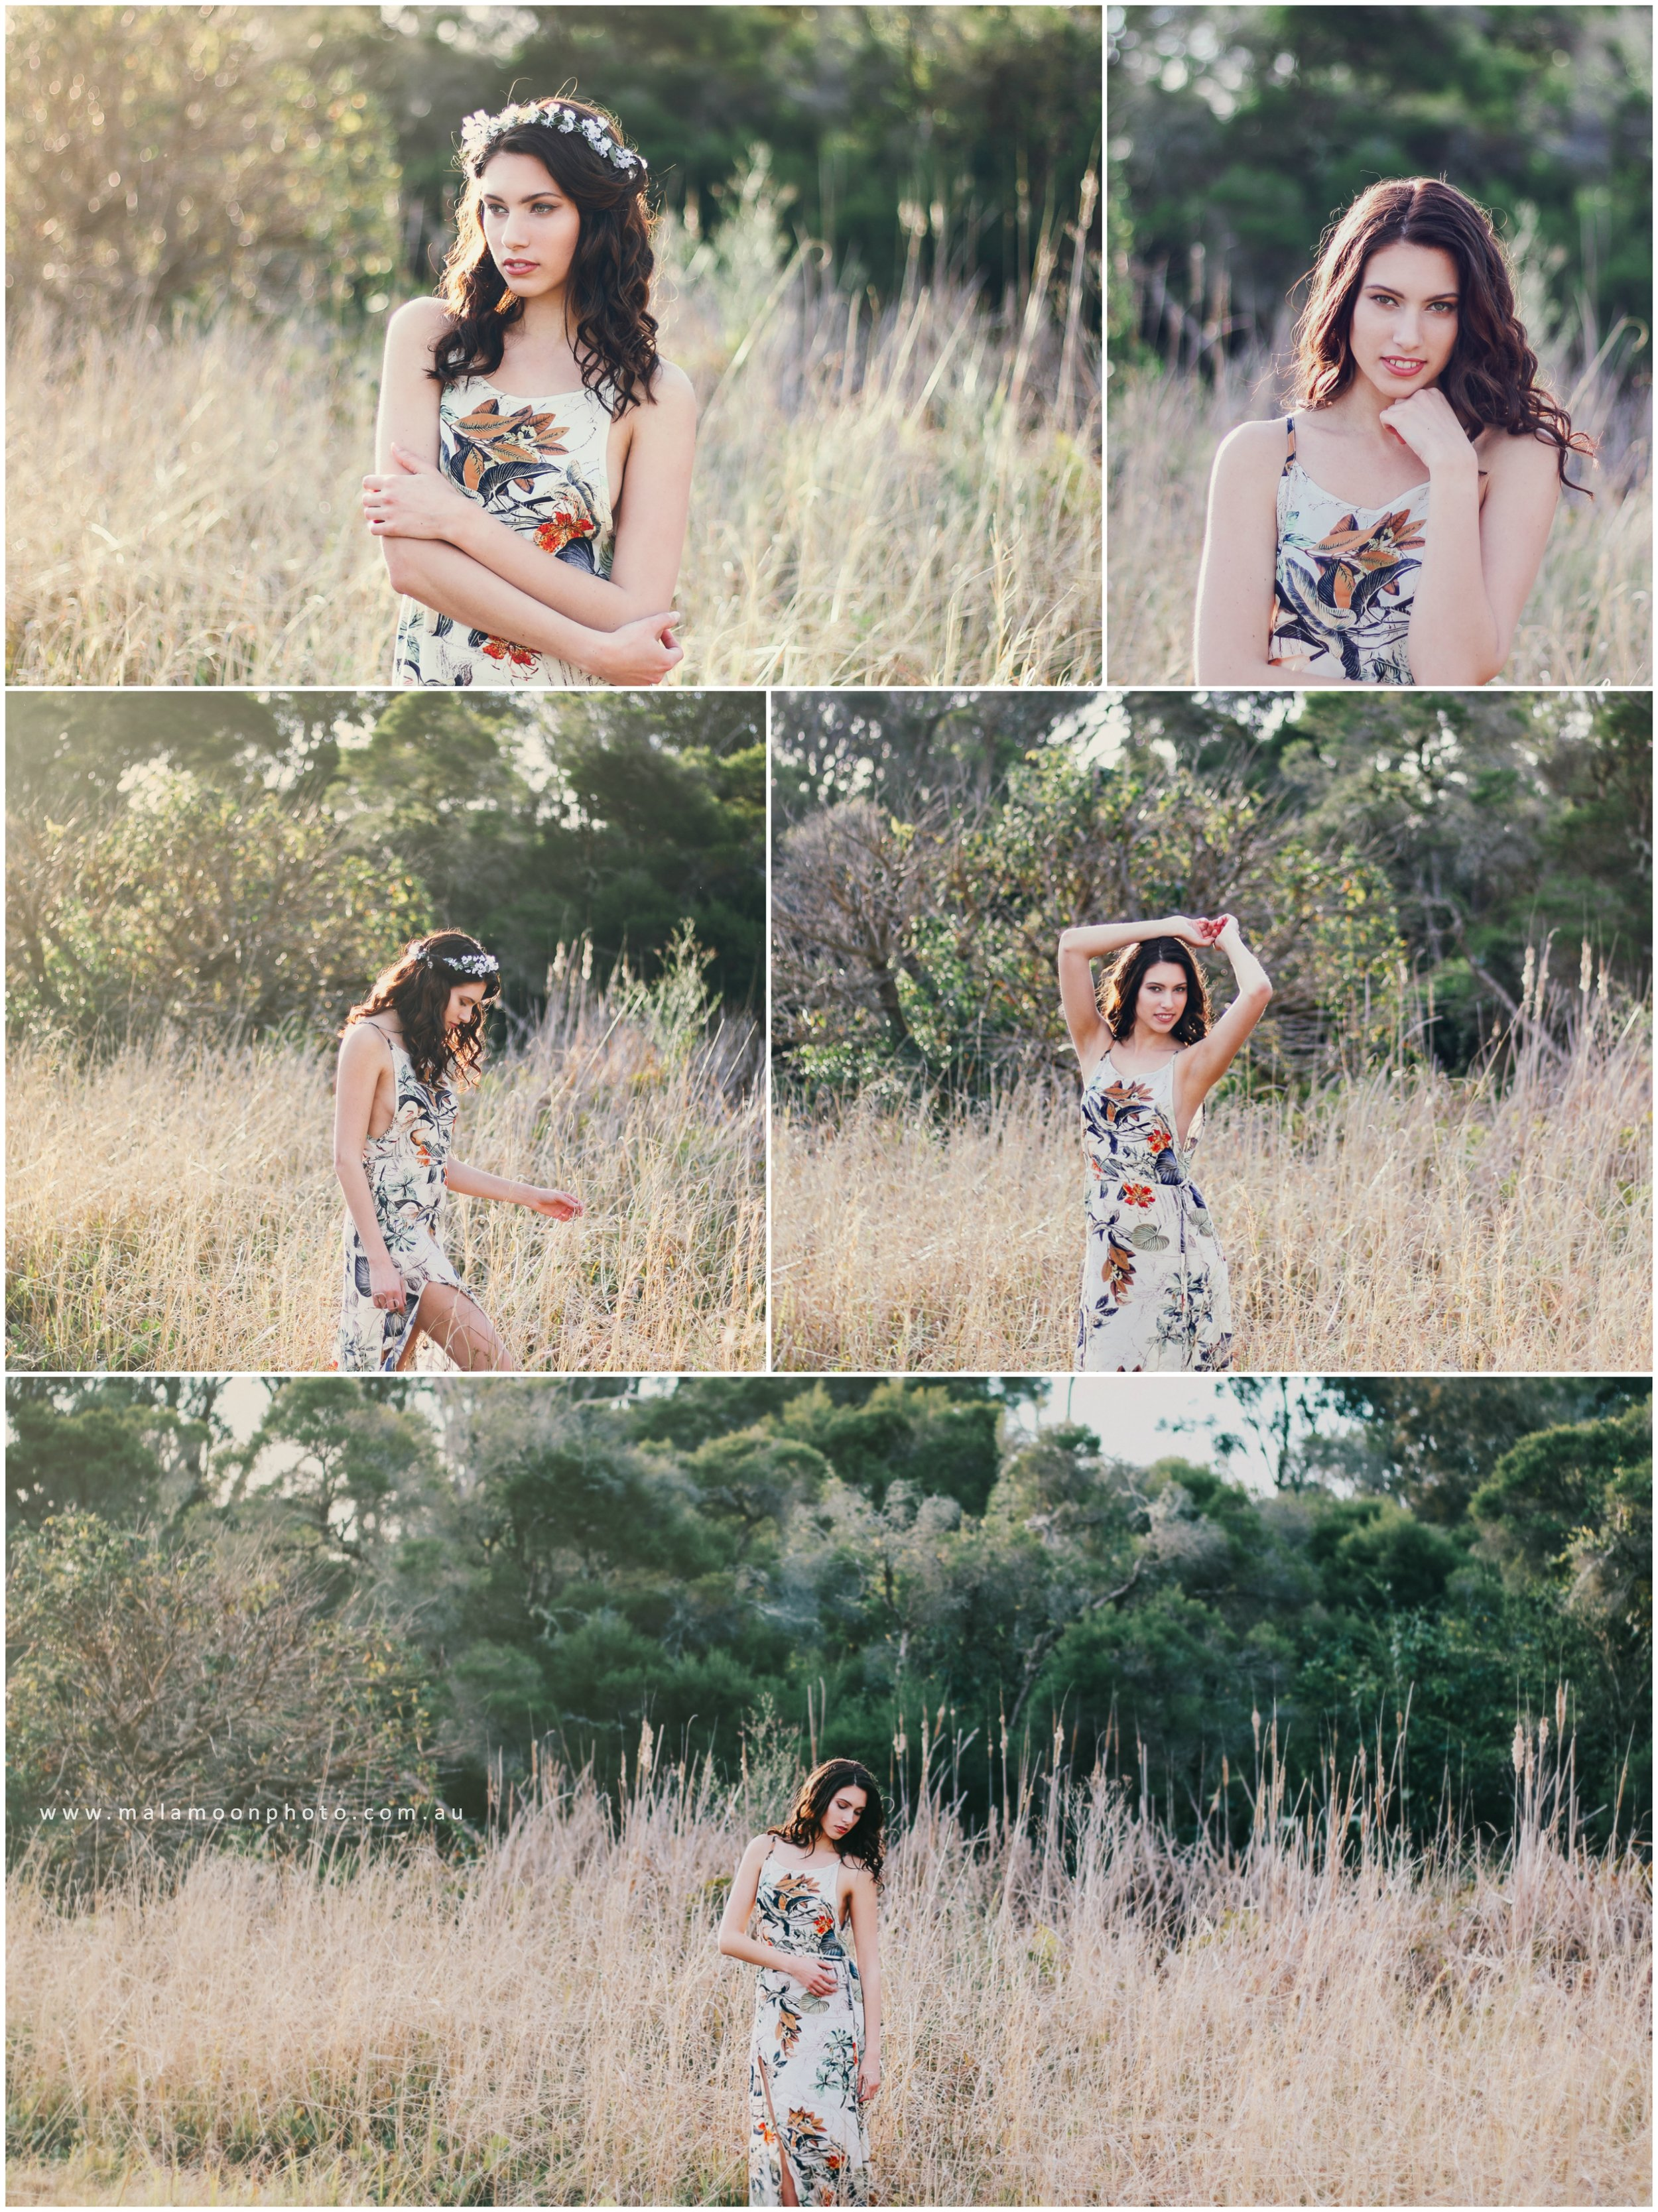 Boho-Girl-Field-Mala-Moon-Photography